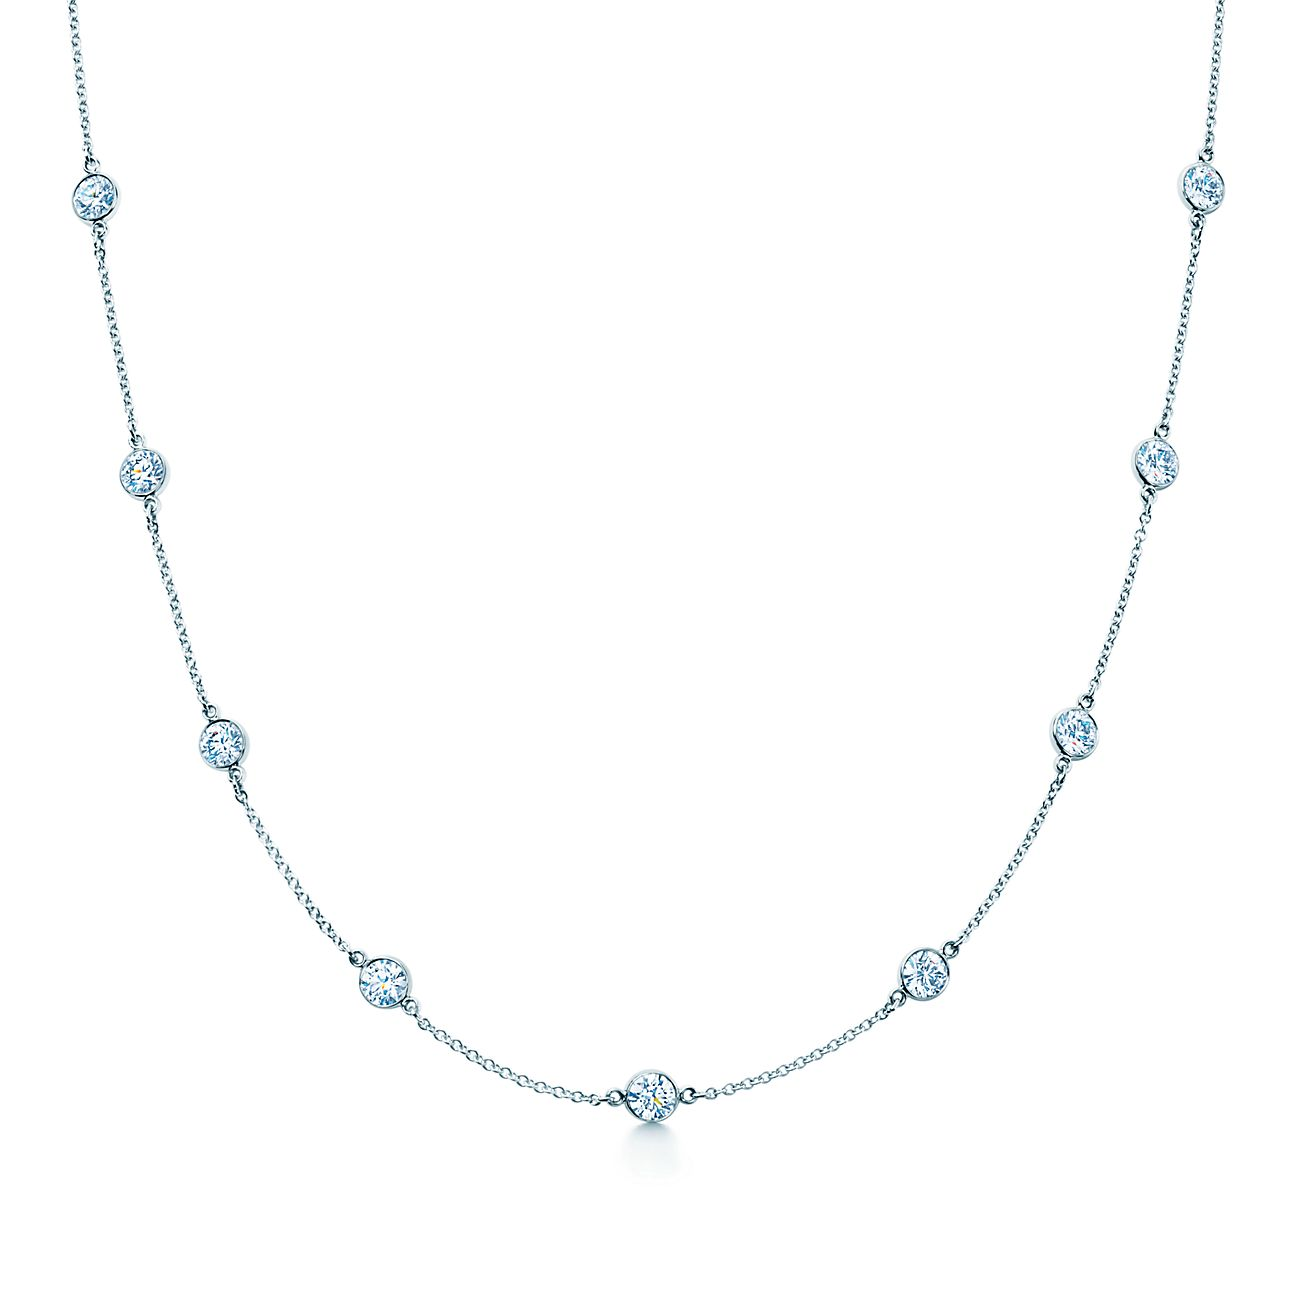 elsa peretti174 diamonds by the yard174 necklace in platinum